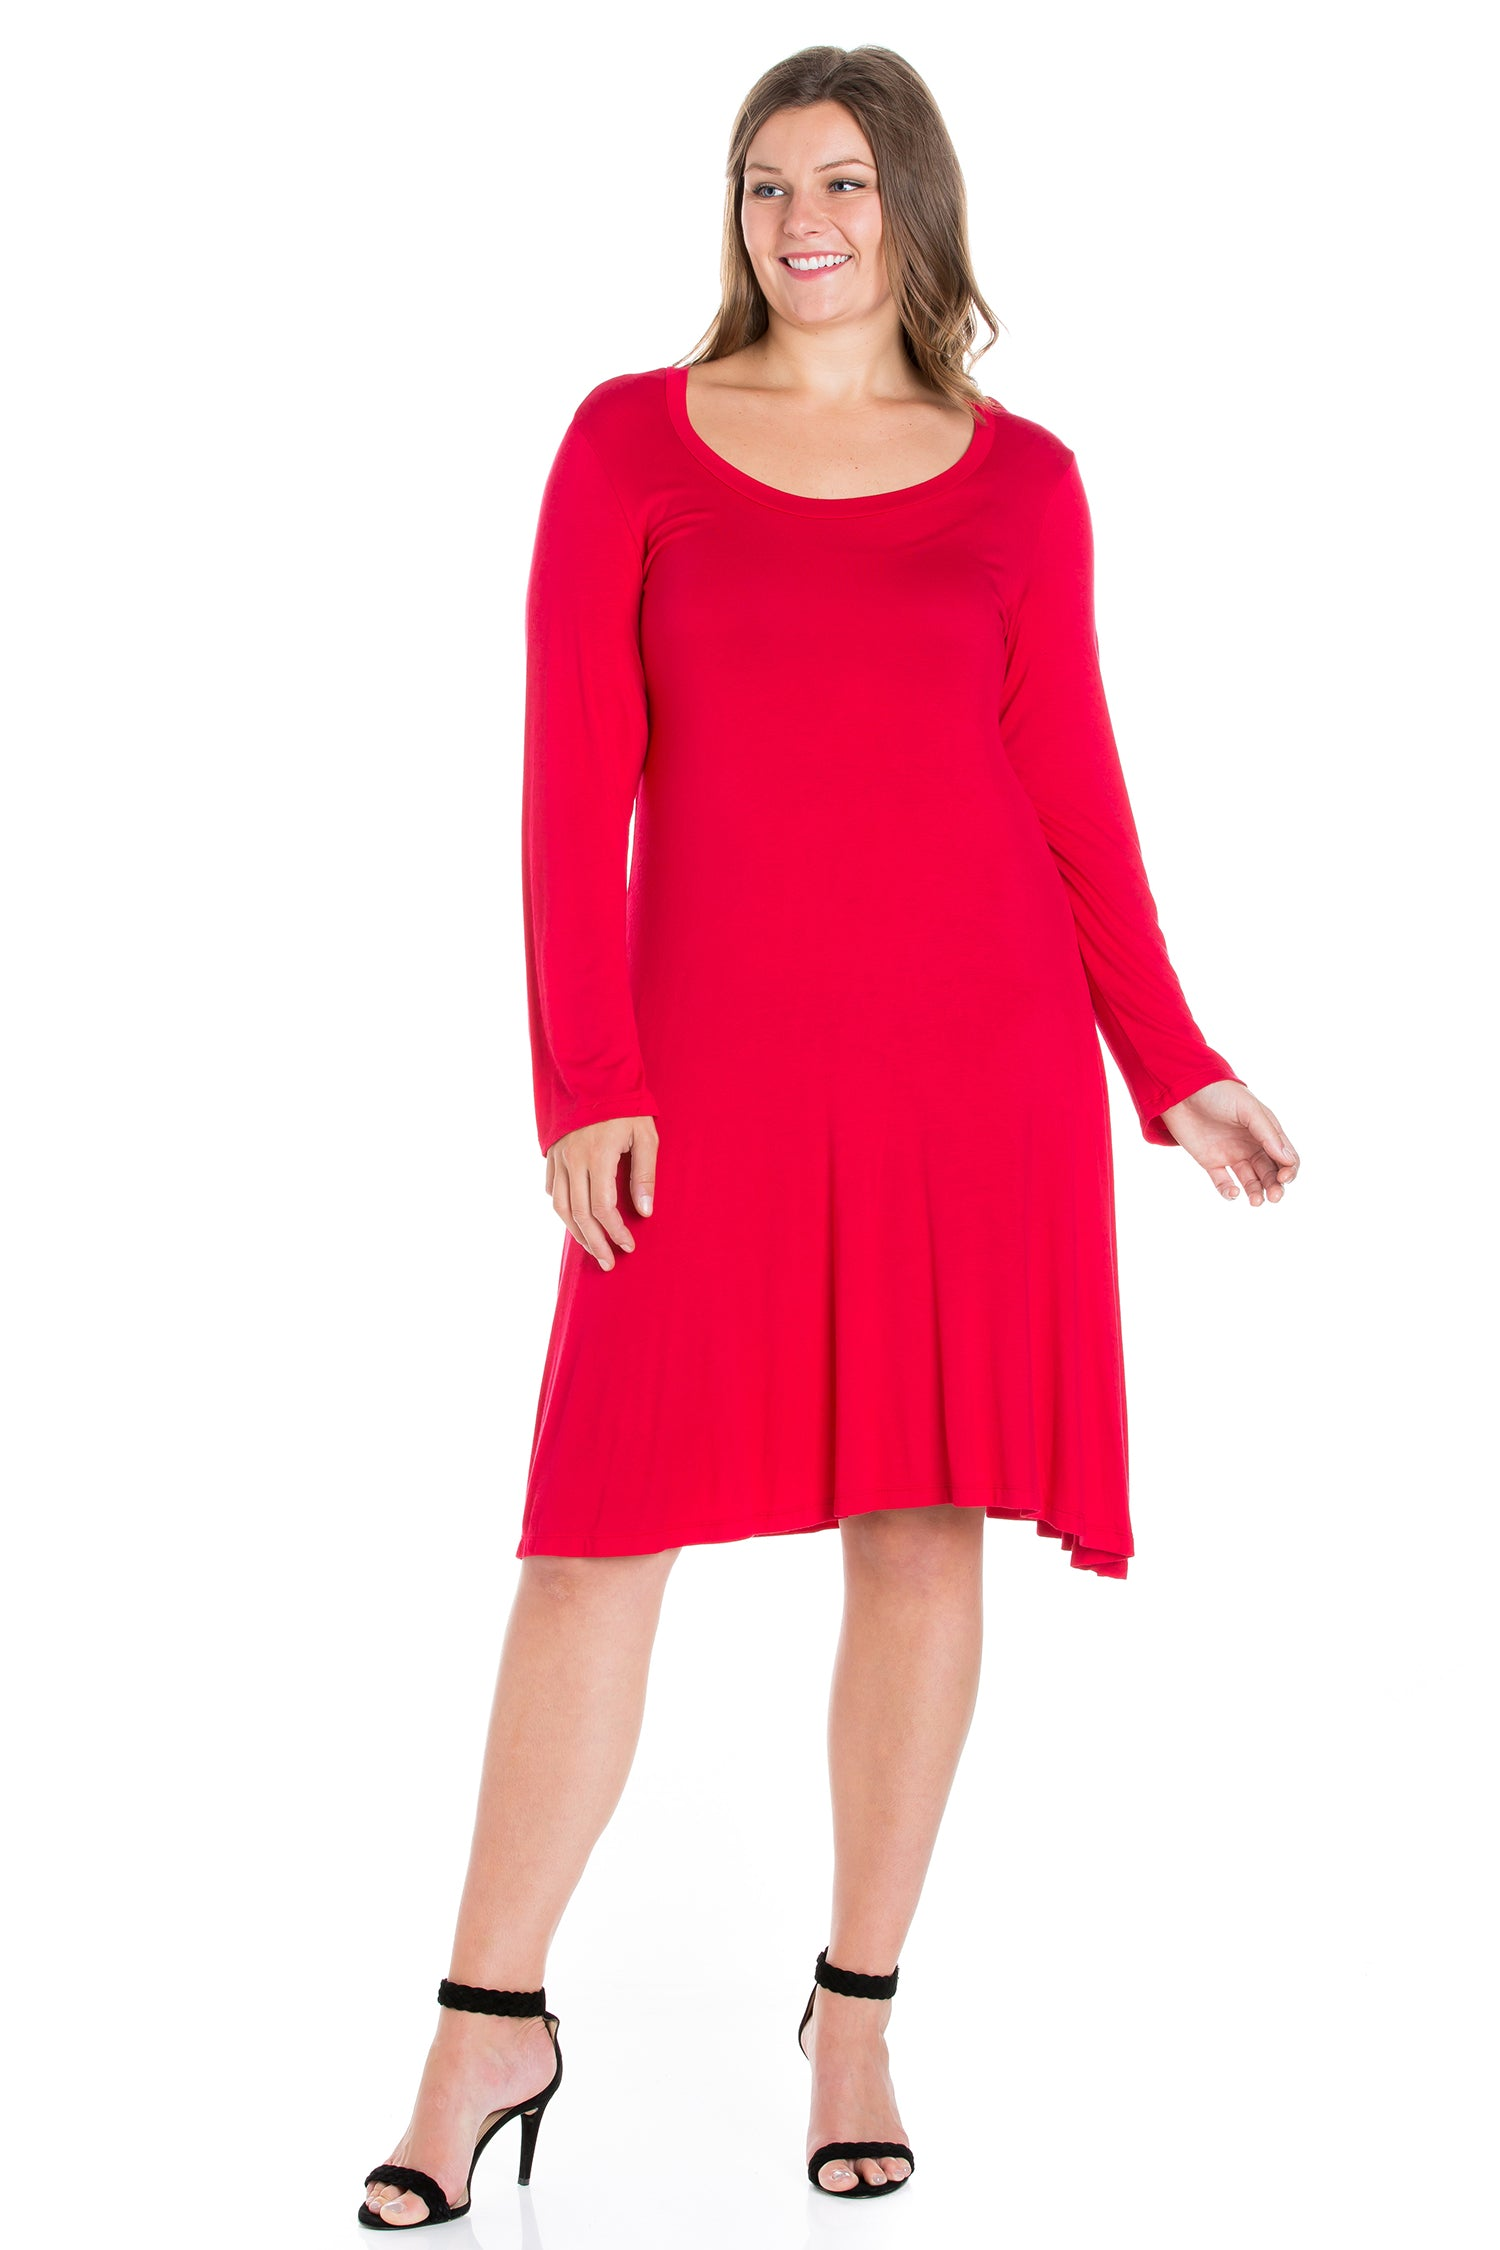 24seven Comfort Apparel Classic Long Sleeve Plus Size Flared Mini Dress-DRESSES-24Seven Comfort Apparel-RED-1X-24/7 Comfort Apparel